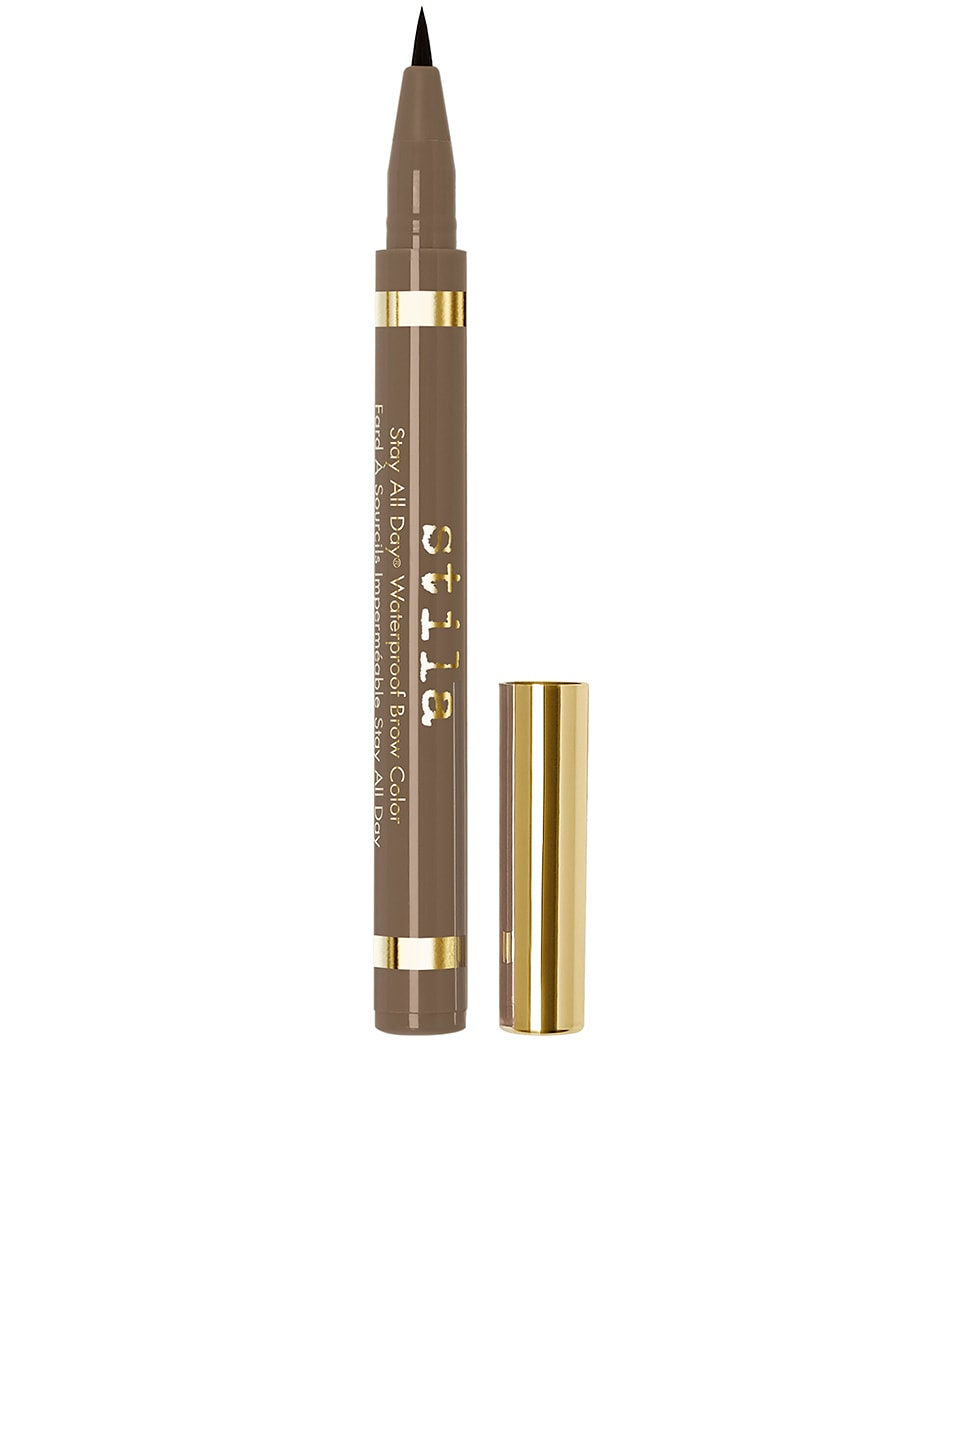 Stila PRODUCTO PARA CEJAS STAY ALL DAY